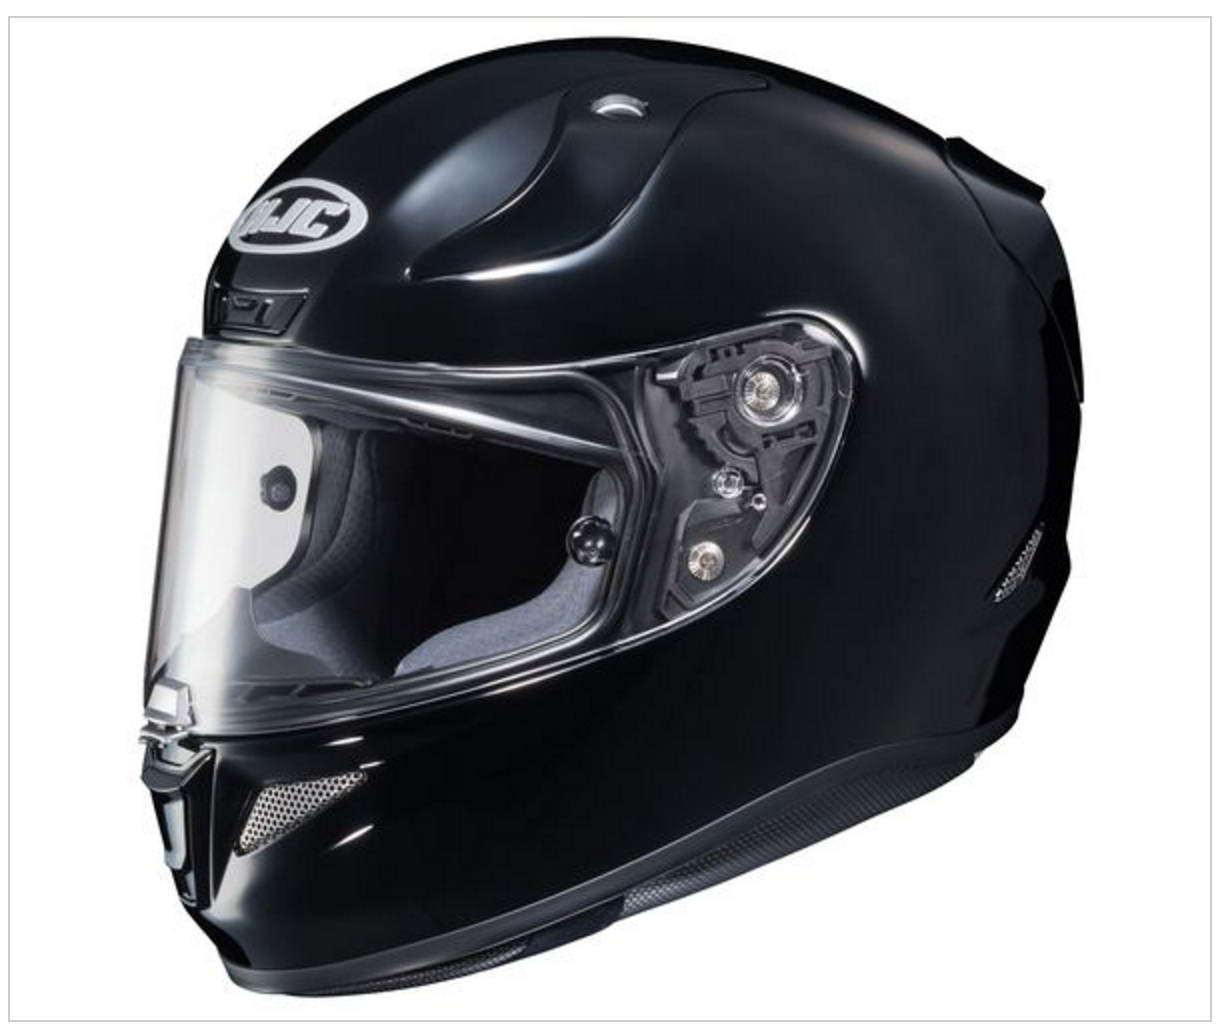 hjc rpha 11 pro motorcycle helmet review. Black Bedroom Furniture Sets. Home Design Ideas